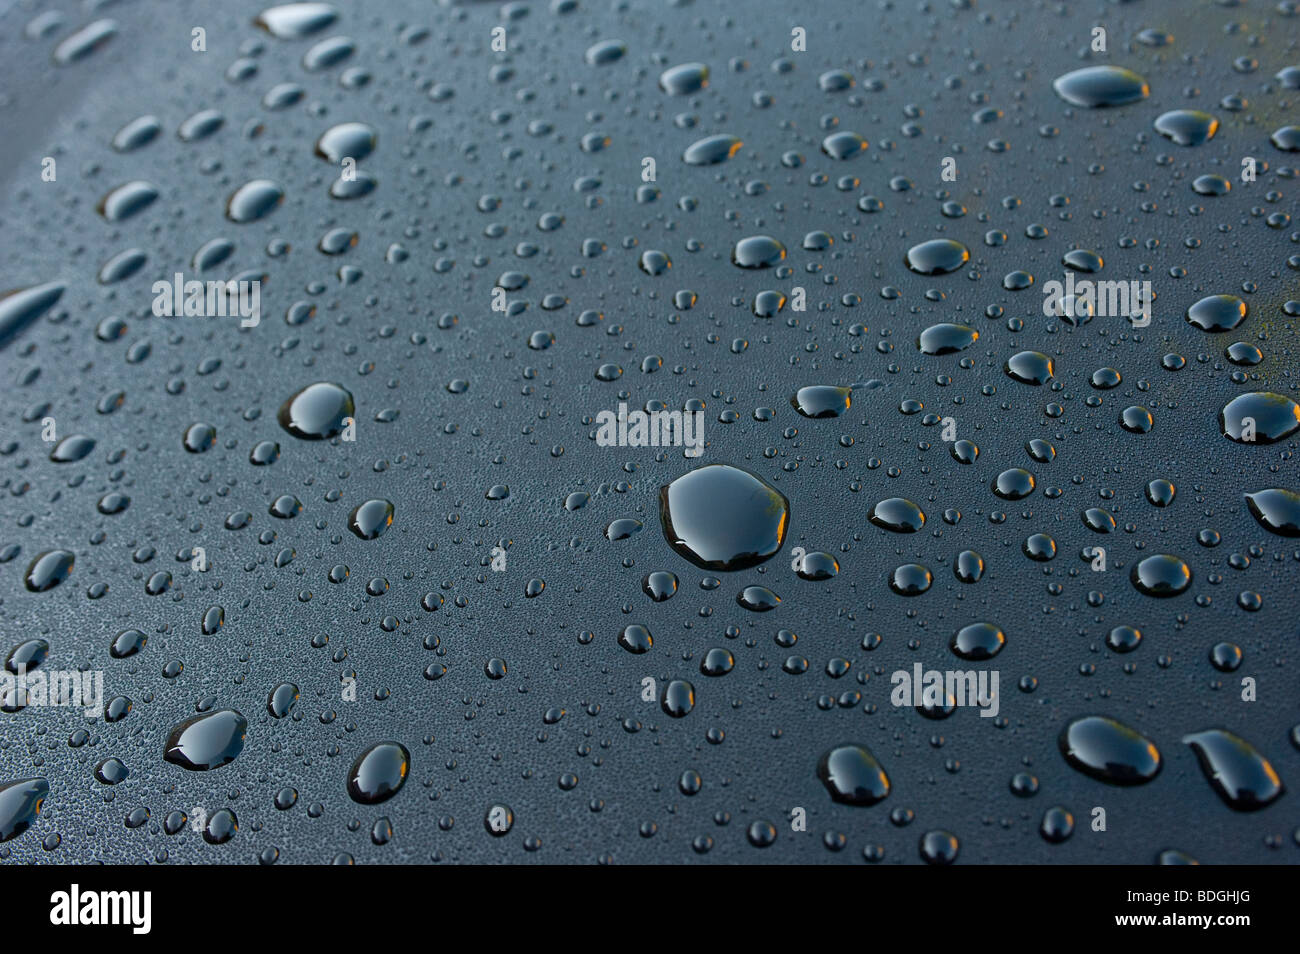 Droplets of water on a tinted car sunroof - Stock Image